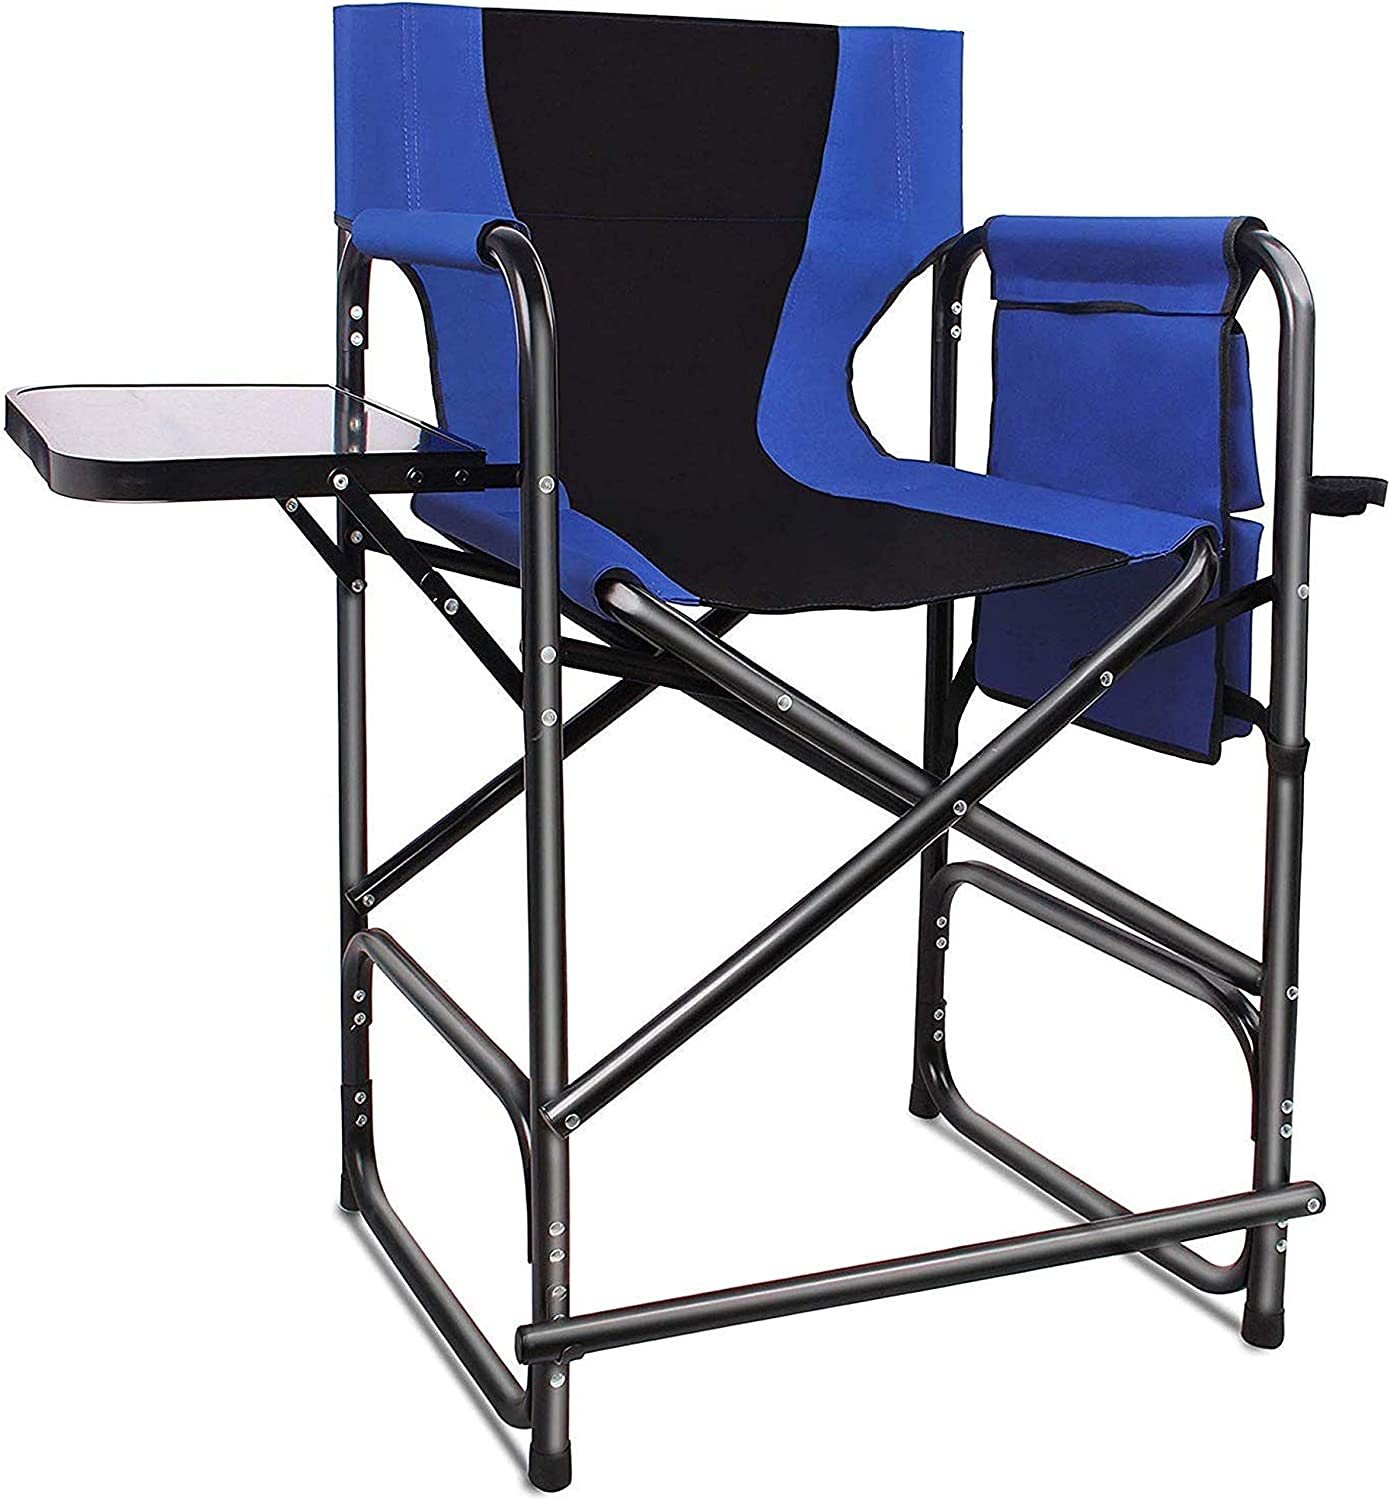 Tall Directors Fort Translated Worth Mall Chair Foldable Bar Campi Height Folding Portable